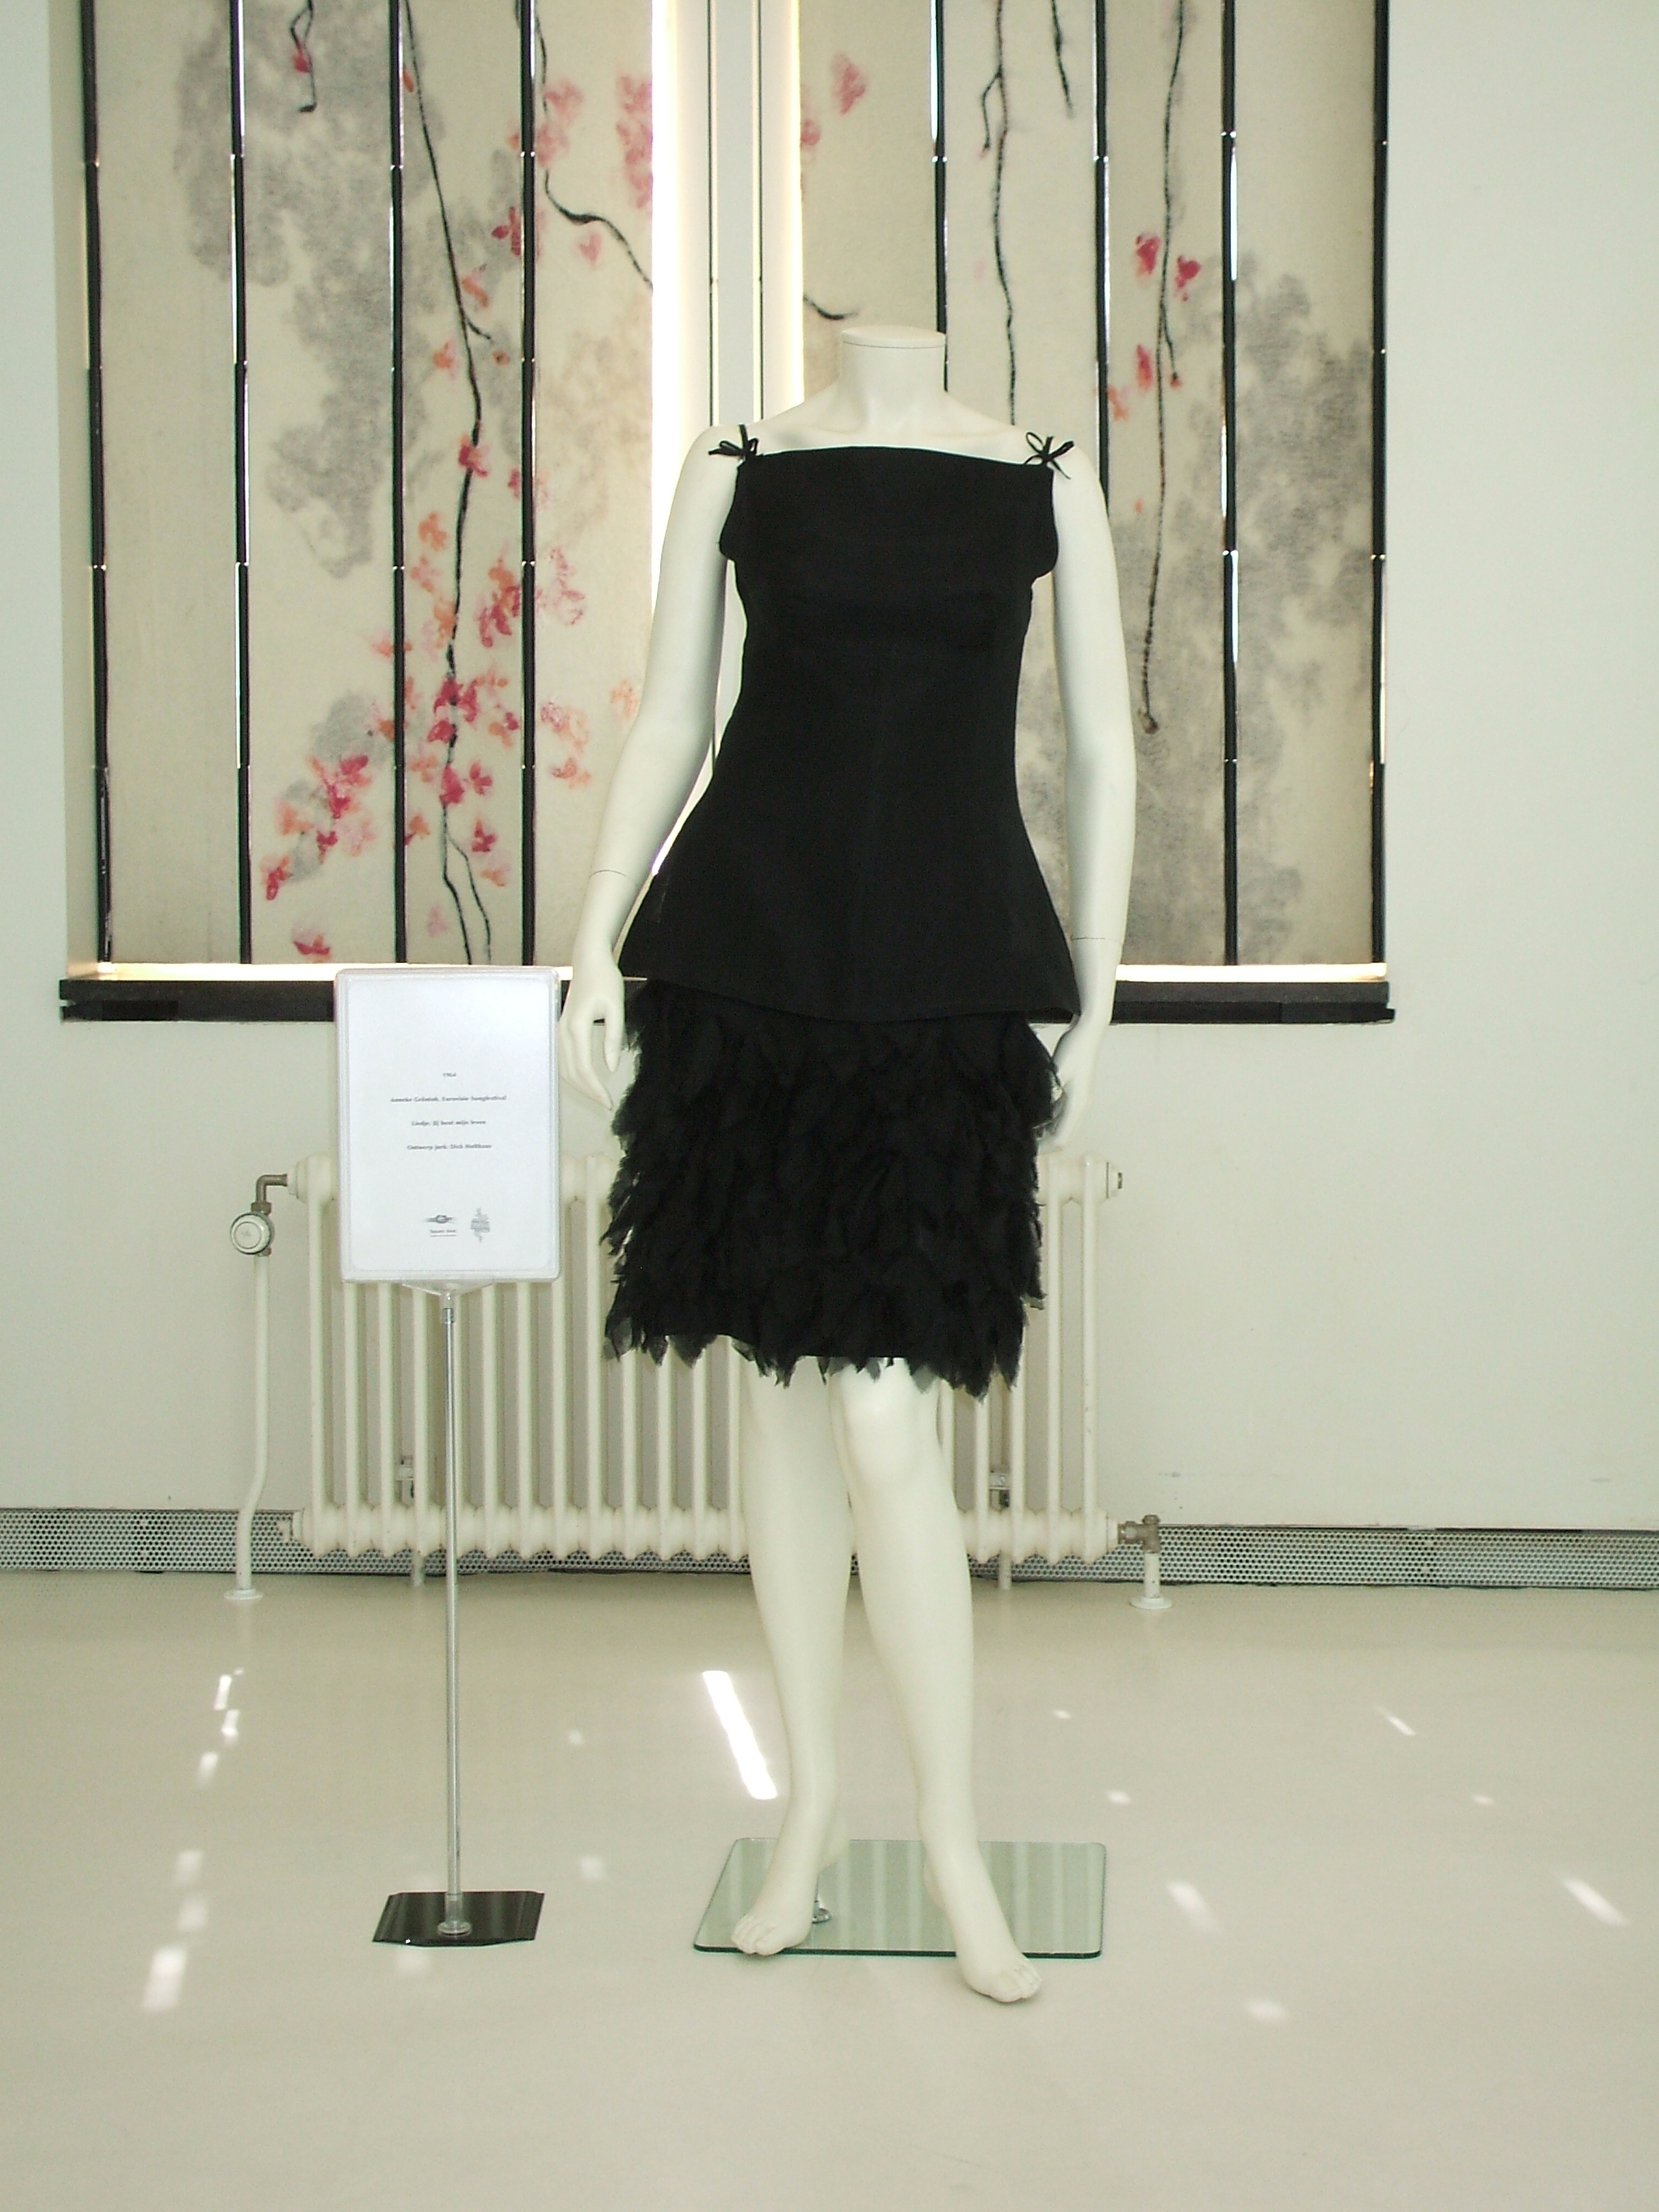 d1e06edc859c0 Little black dress - Wikipedia